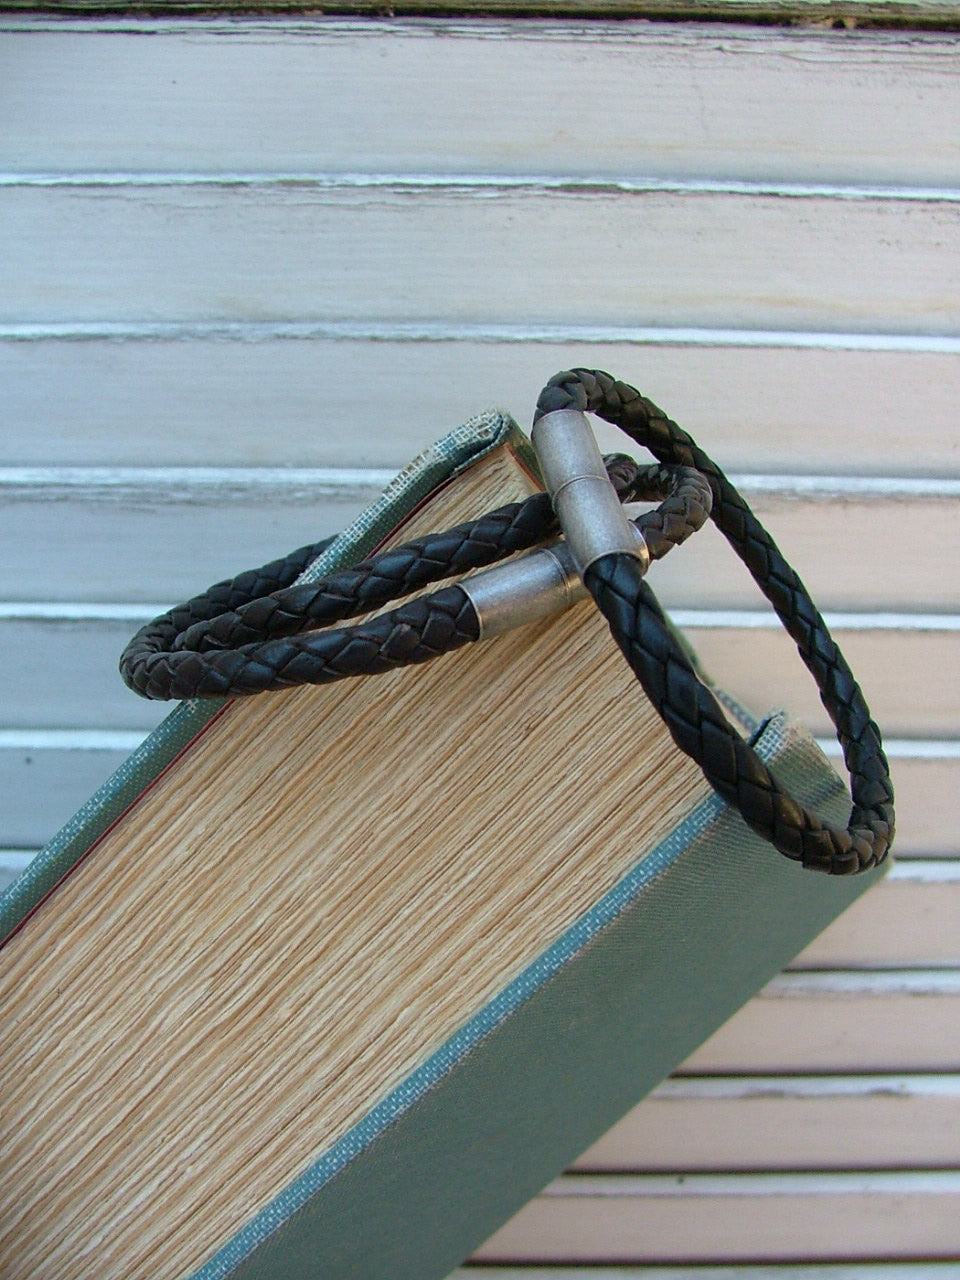 Simple Strands Custom Cut Braided Leather Cuffs with Magnetic Clasp by MyBella